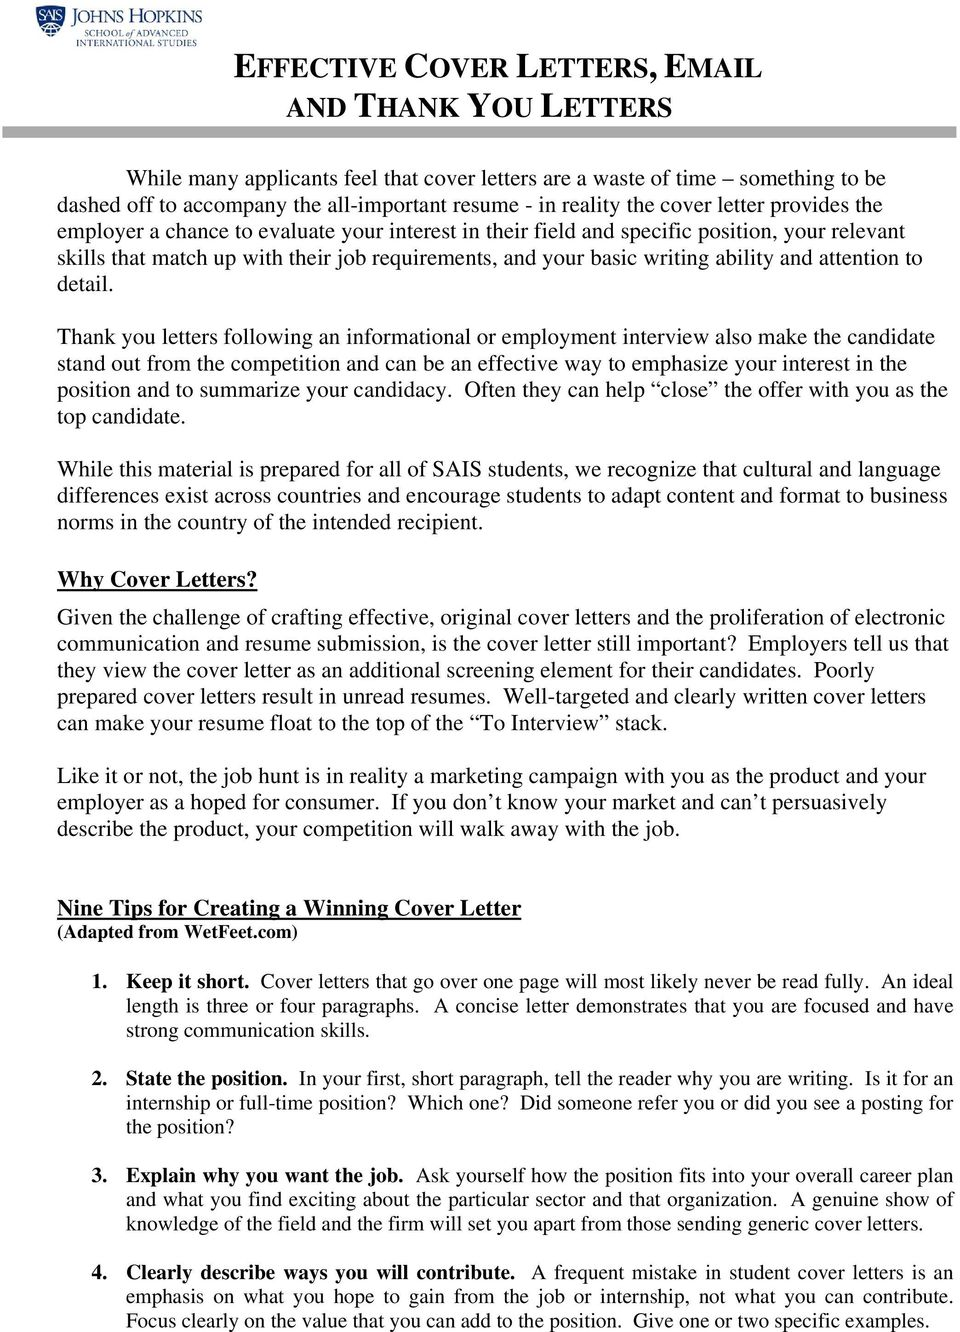 EFFECTIVE COVER LETTERS, - PDF Free Download